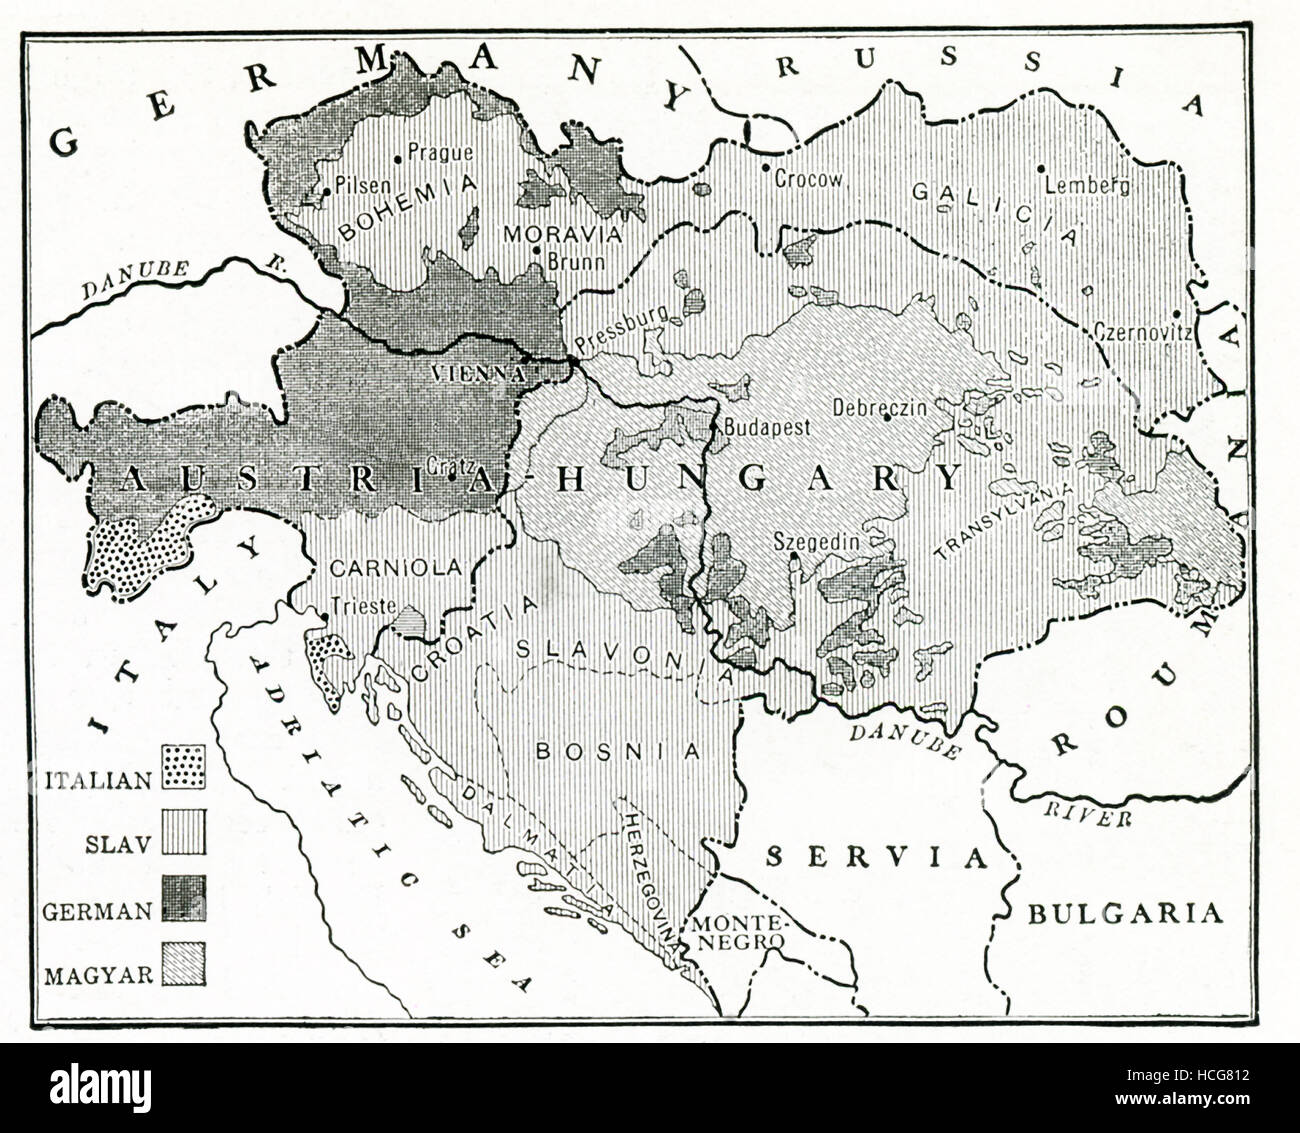 This map dates to 1917, the time of the First World War, and shows the intricate racial distribution (Italian, Slav, - Stock Image